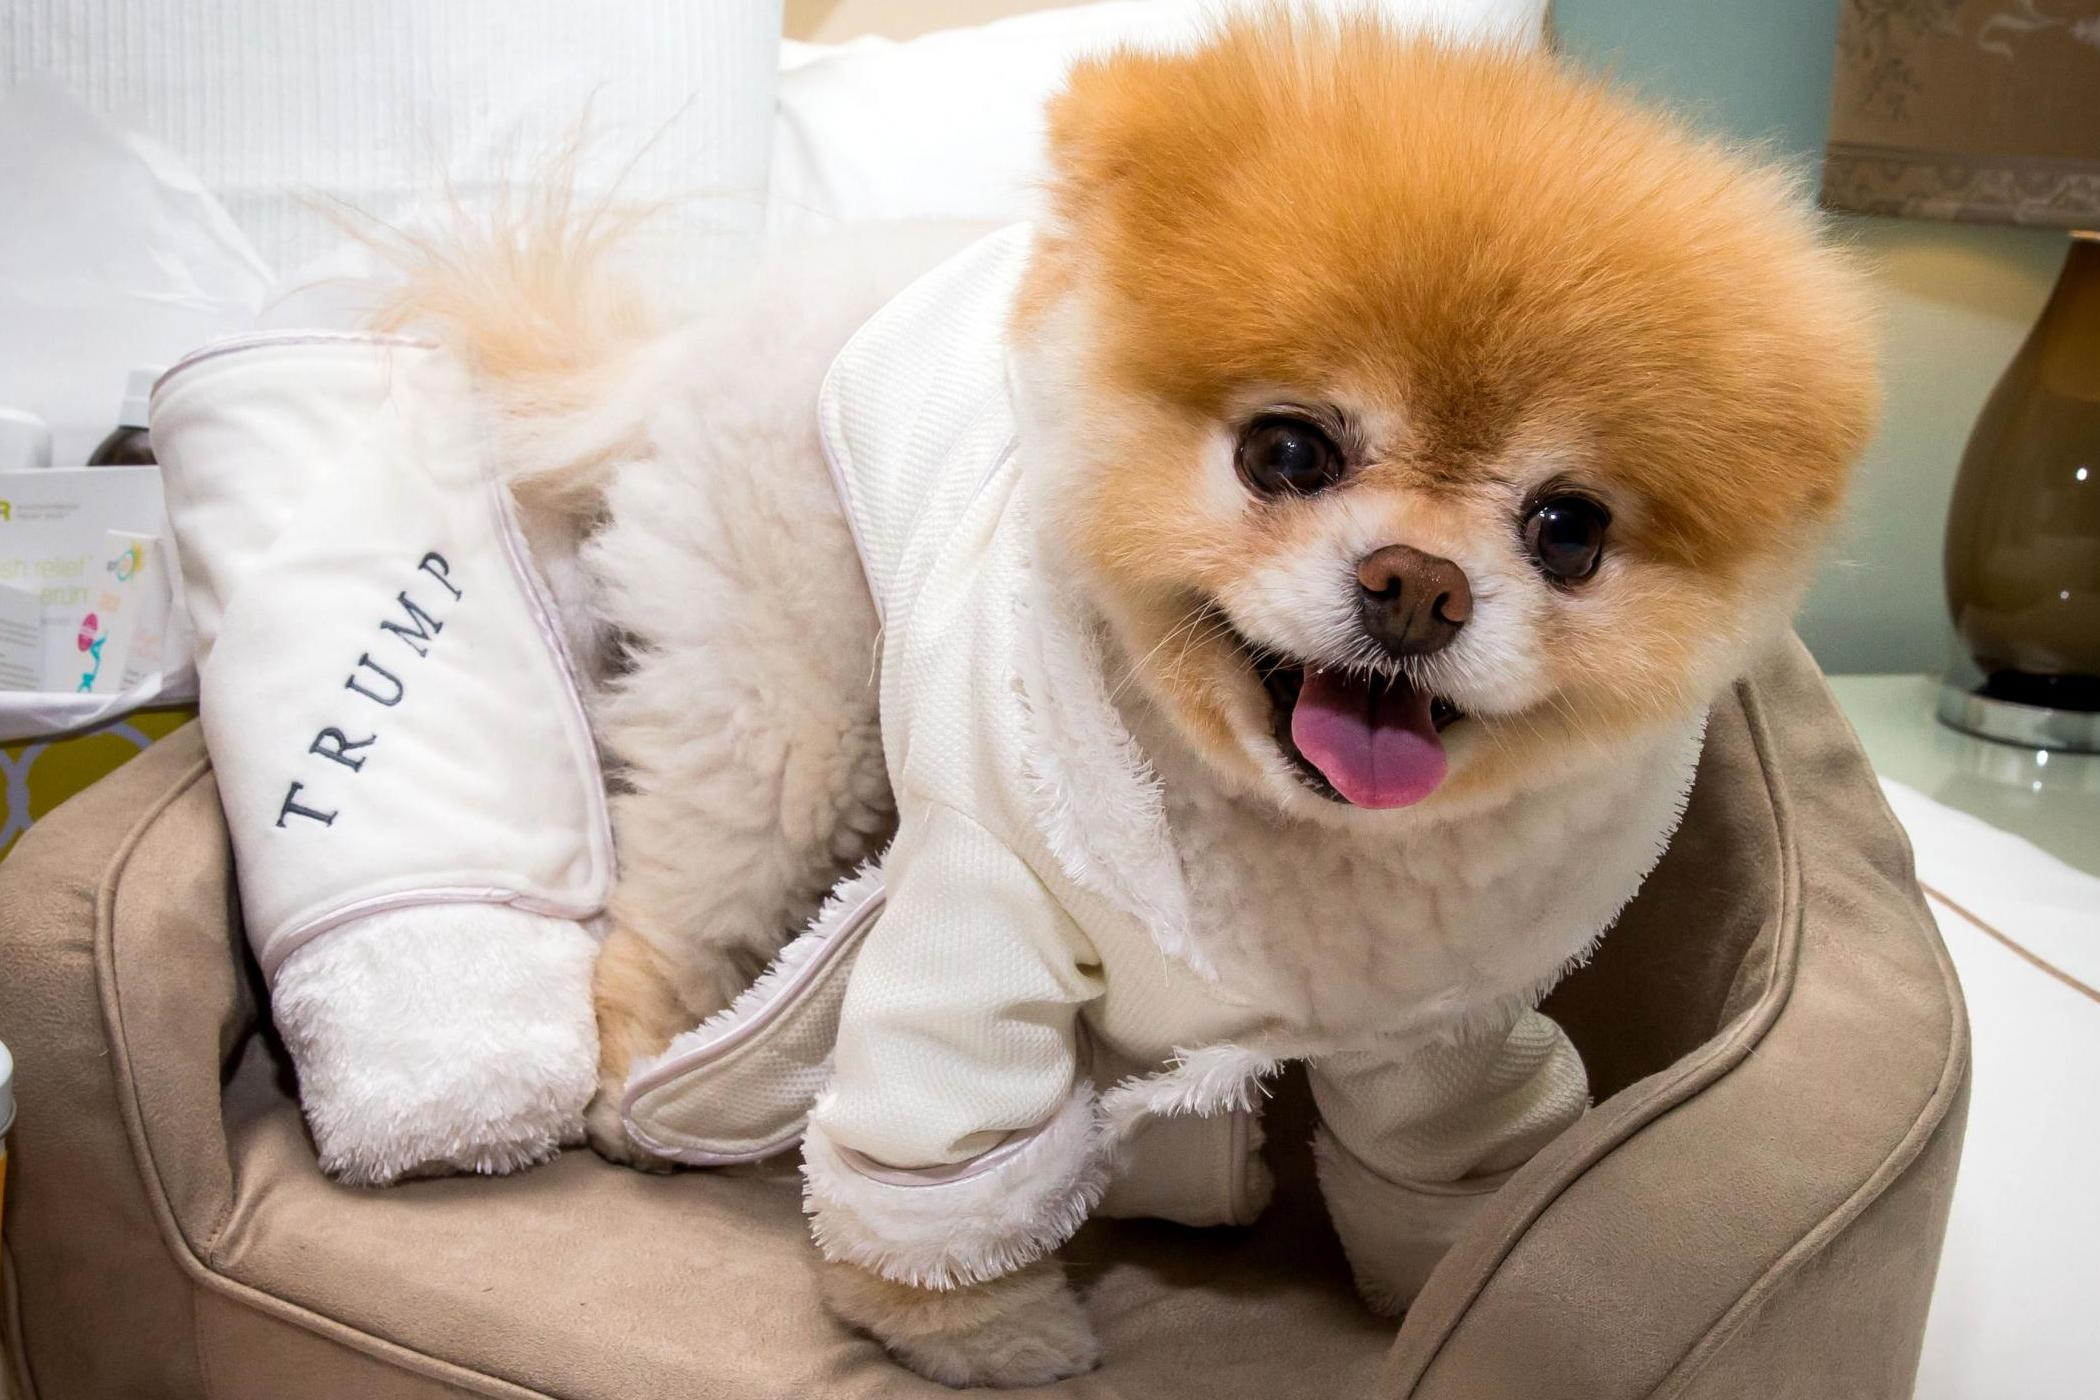 Boo The Pomeranian Dead Famous Dogs After His Heart Literally Broke Age 12 The Independent